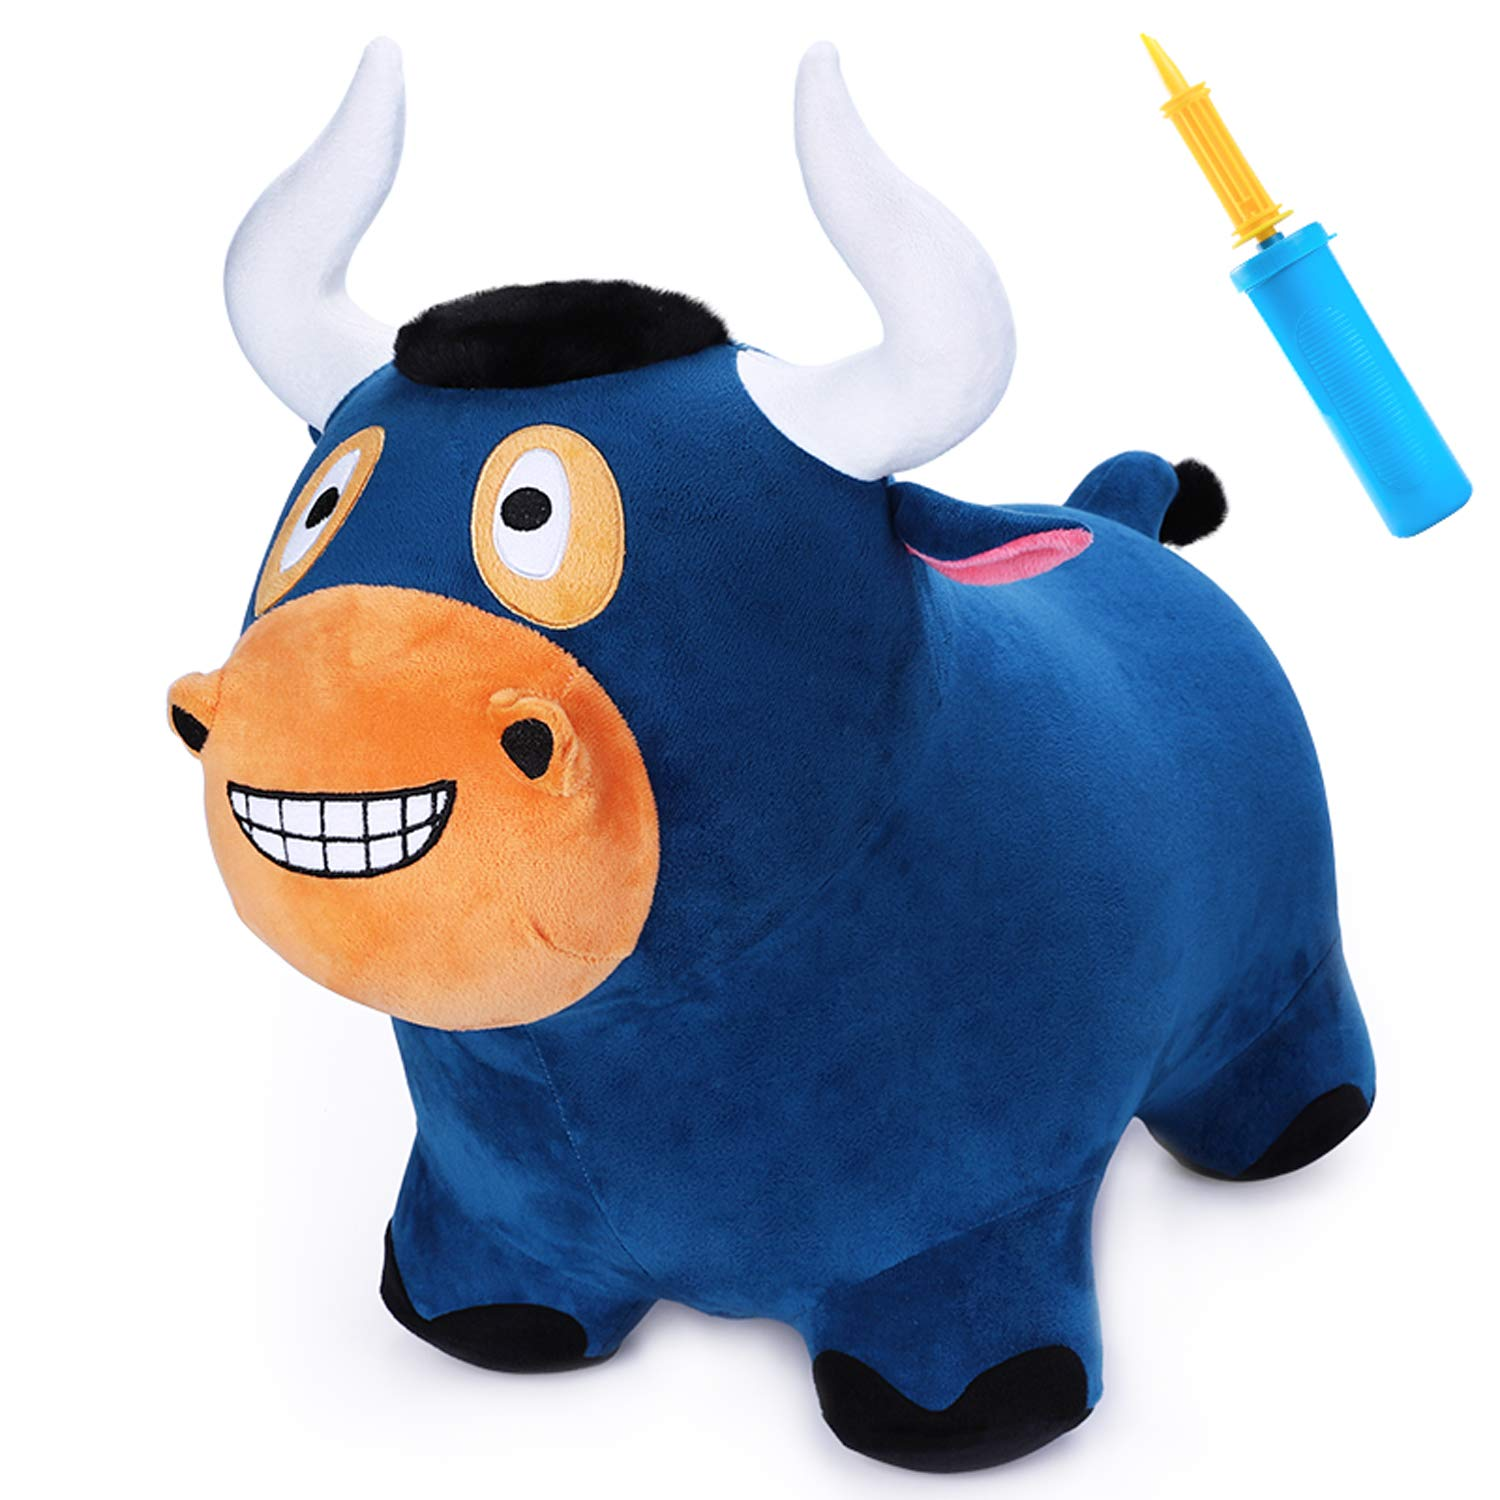 iPlay, iLearn Bouncy Bull Hopper Horse Ride on Toys, Inflatable Plush Riding Hopping Farm Animals, Outdoor Jumping Toddler Bouncer with Pump, Activity Gifts for 2, 3, 4, 5 Year Olds, Kids, Boys, Girls